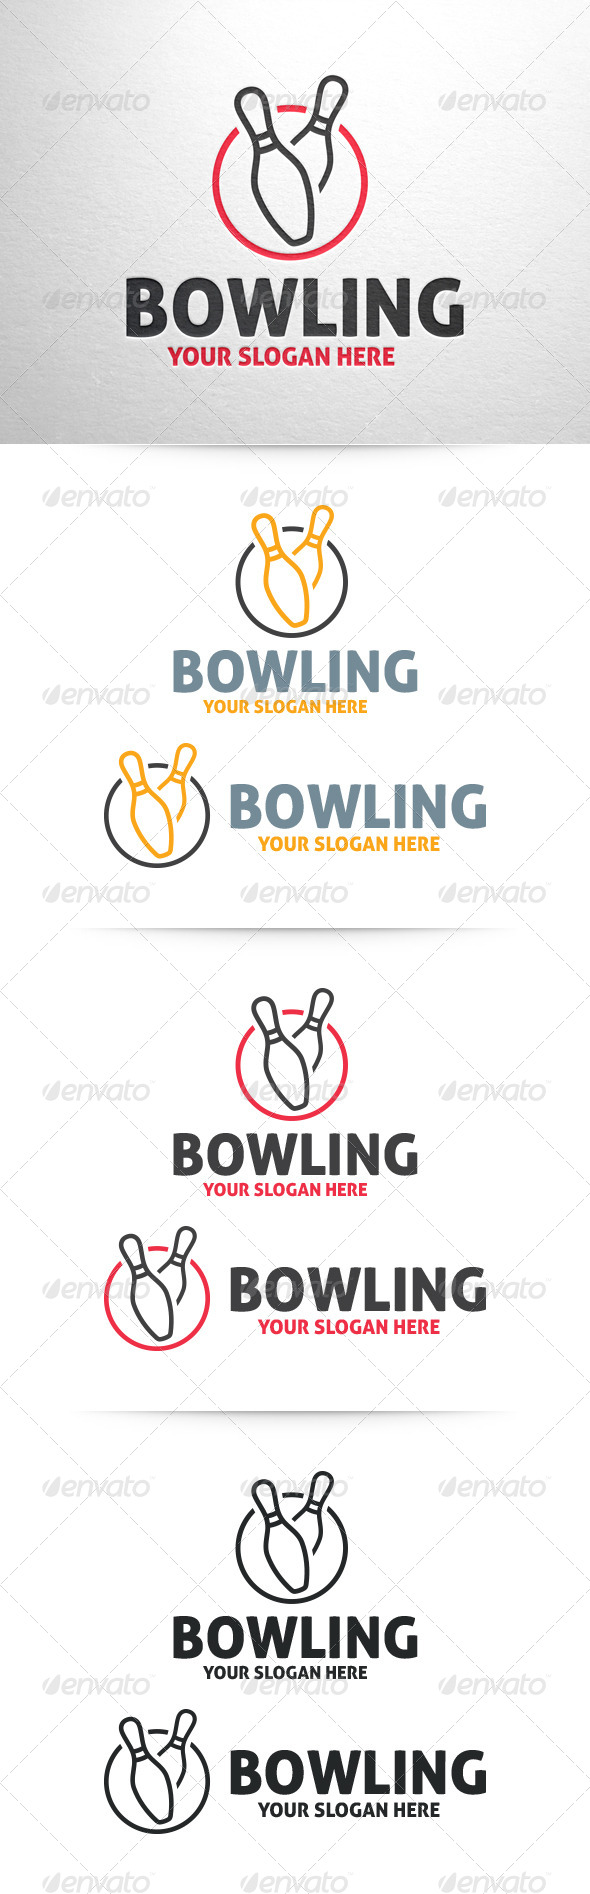 Bowling Logo Template - Part 2